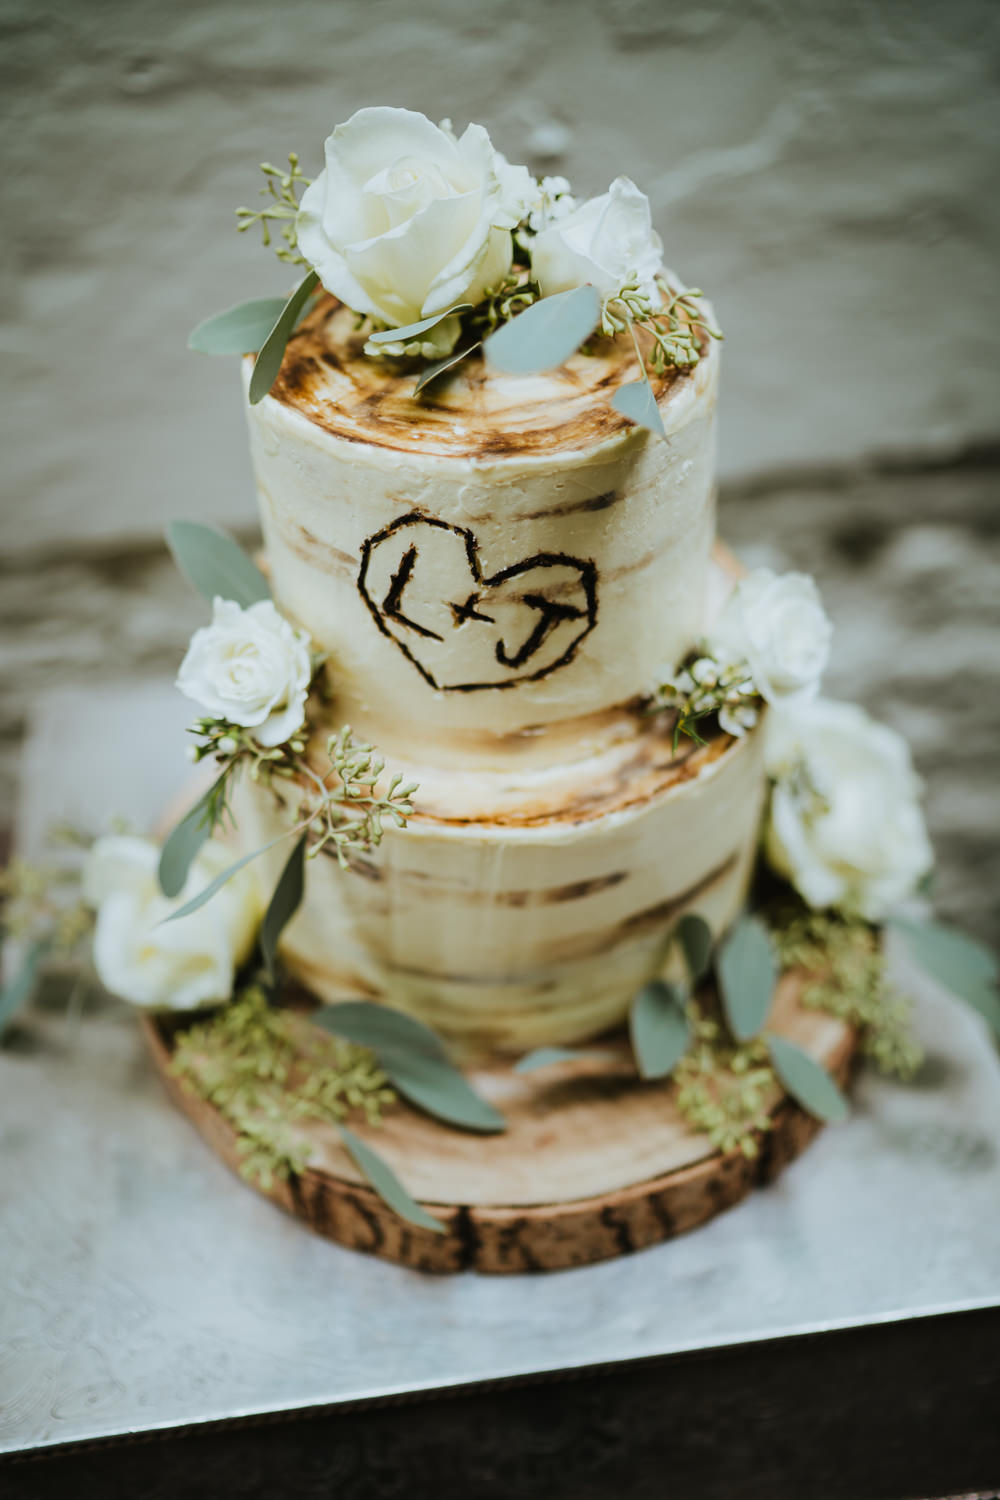 Rustic Buttercream Cake Heart Initials Wood Tree Log Flowers Micro Wedding Nicola Dawson Photography